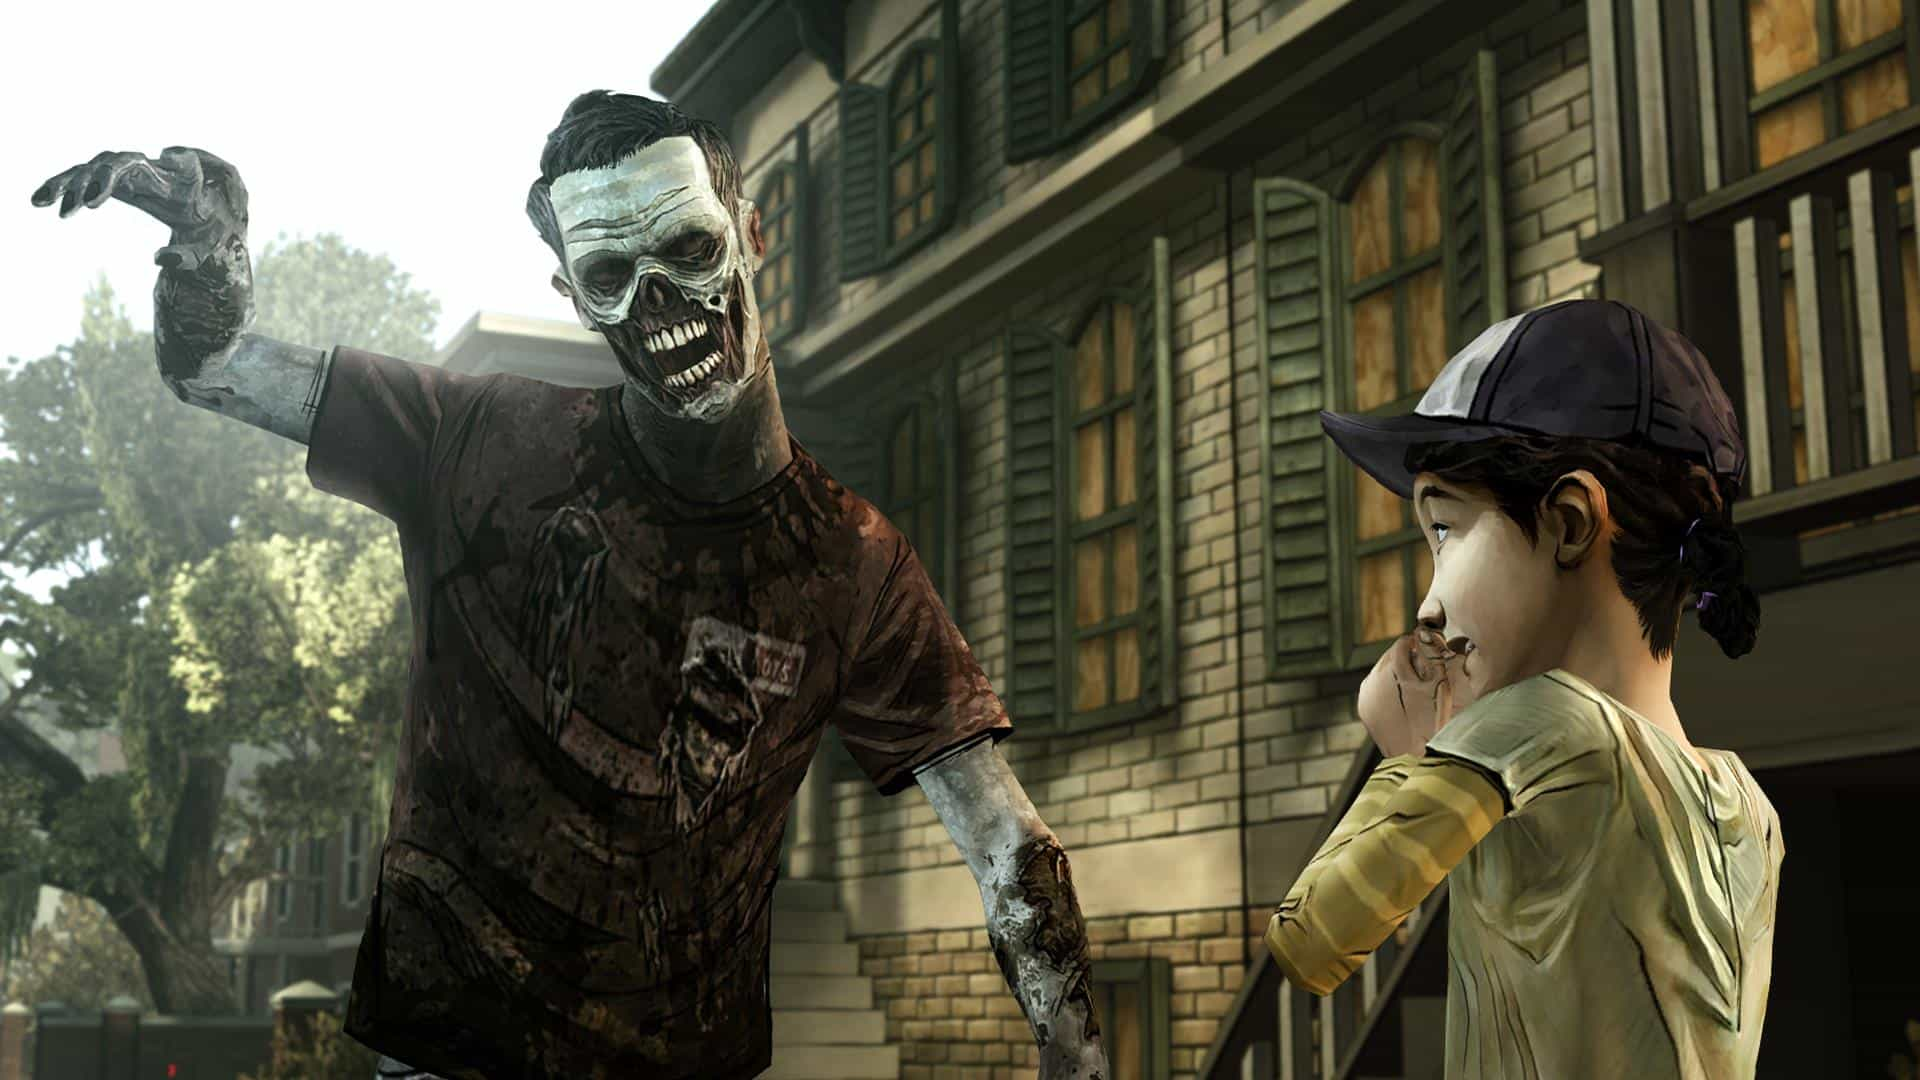 mais sobre o aplicativo the walking dead: the game para android e ios